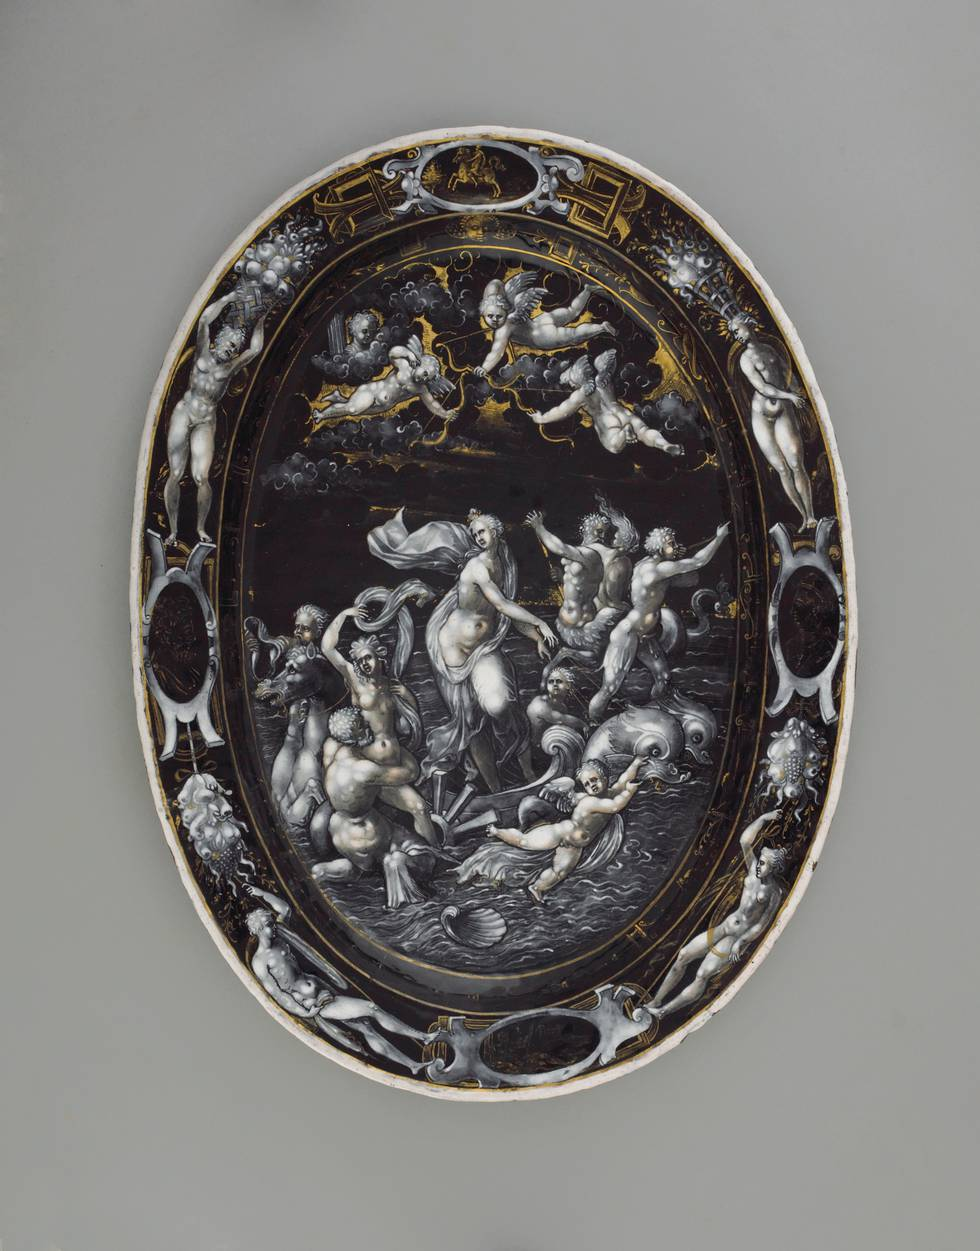 Enamel dish, women surrounded by a group of people in a river